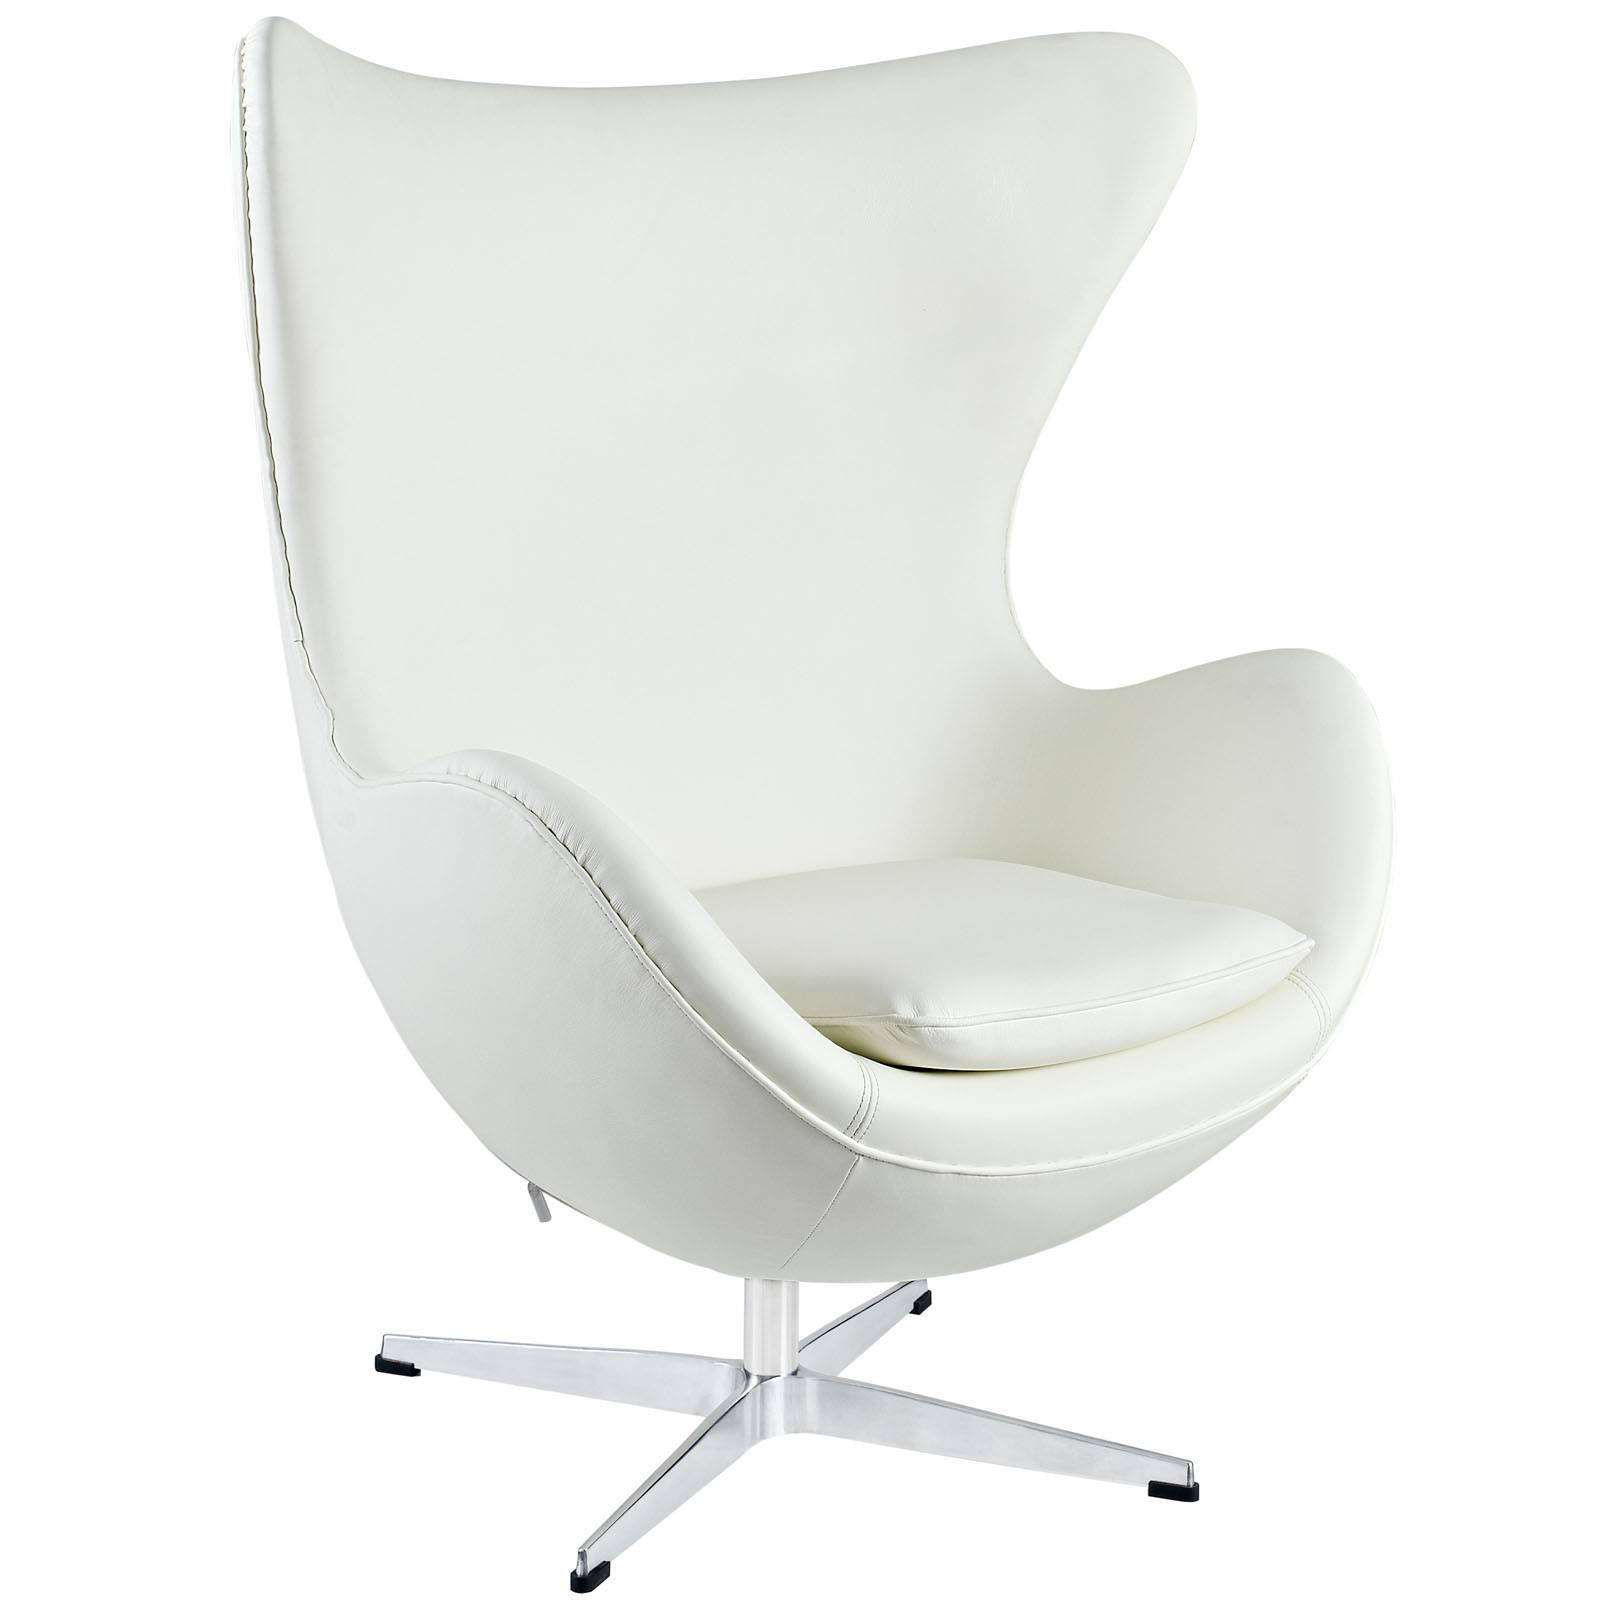 Black leather wing chair - Arne Jacobson Style Egg Chair Leather